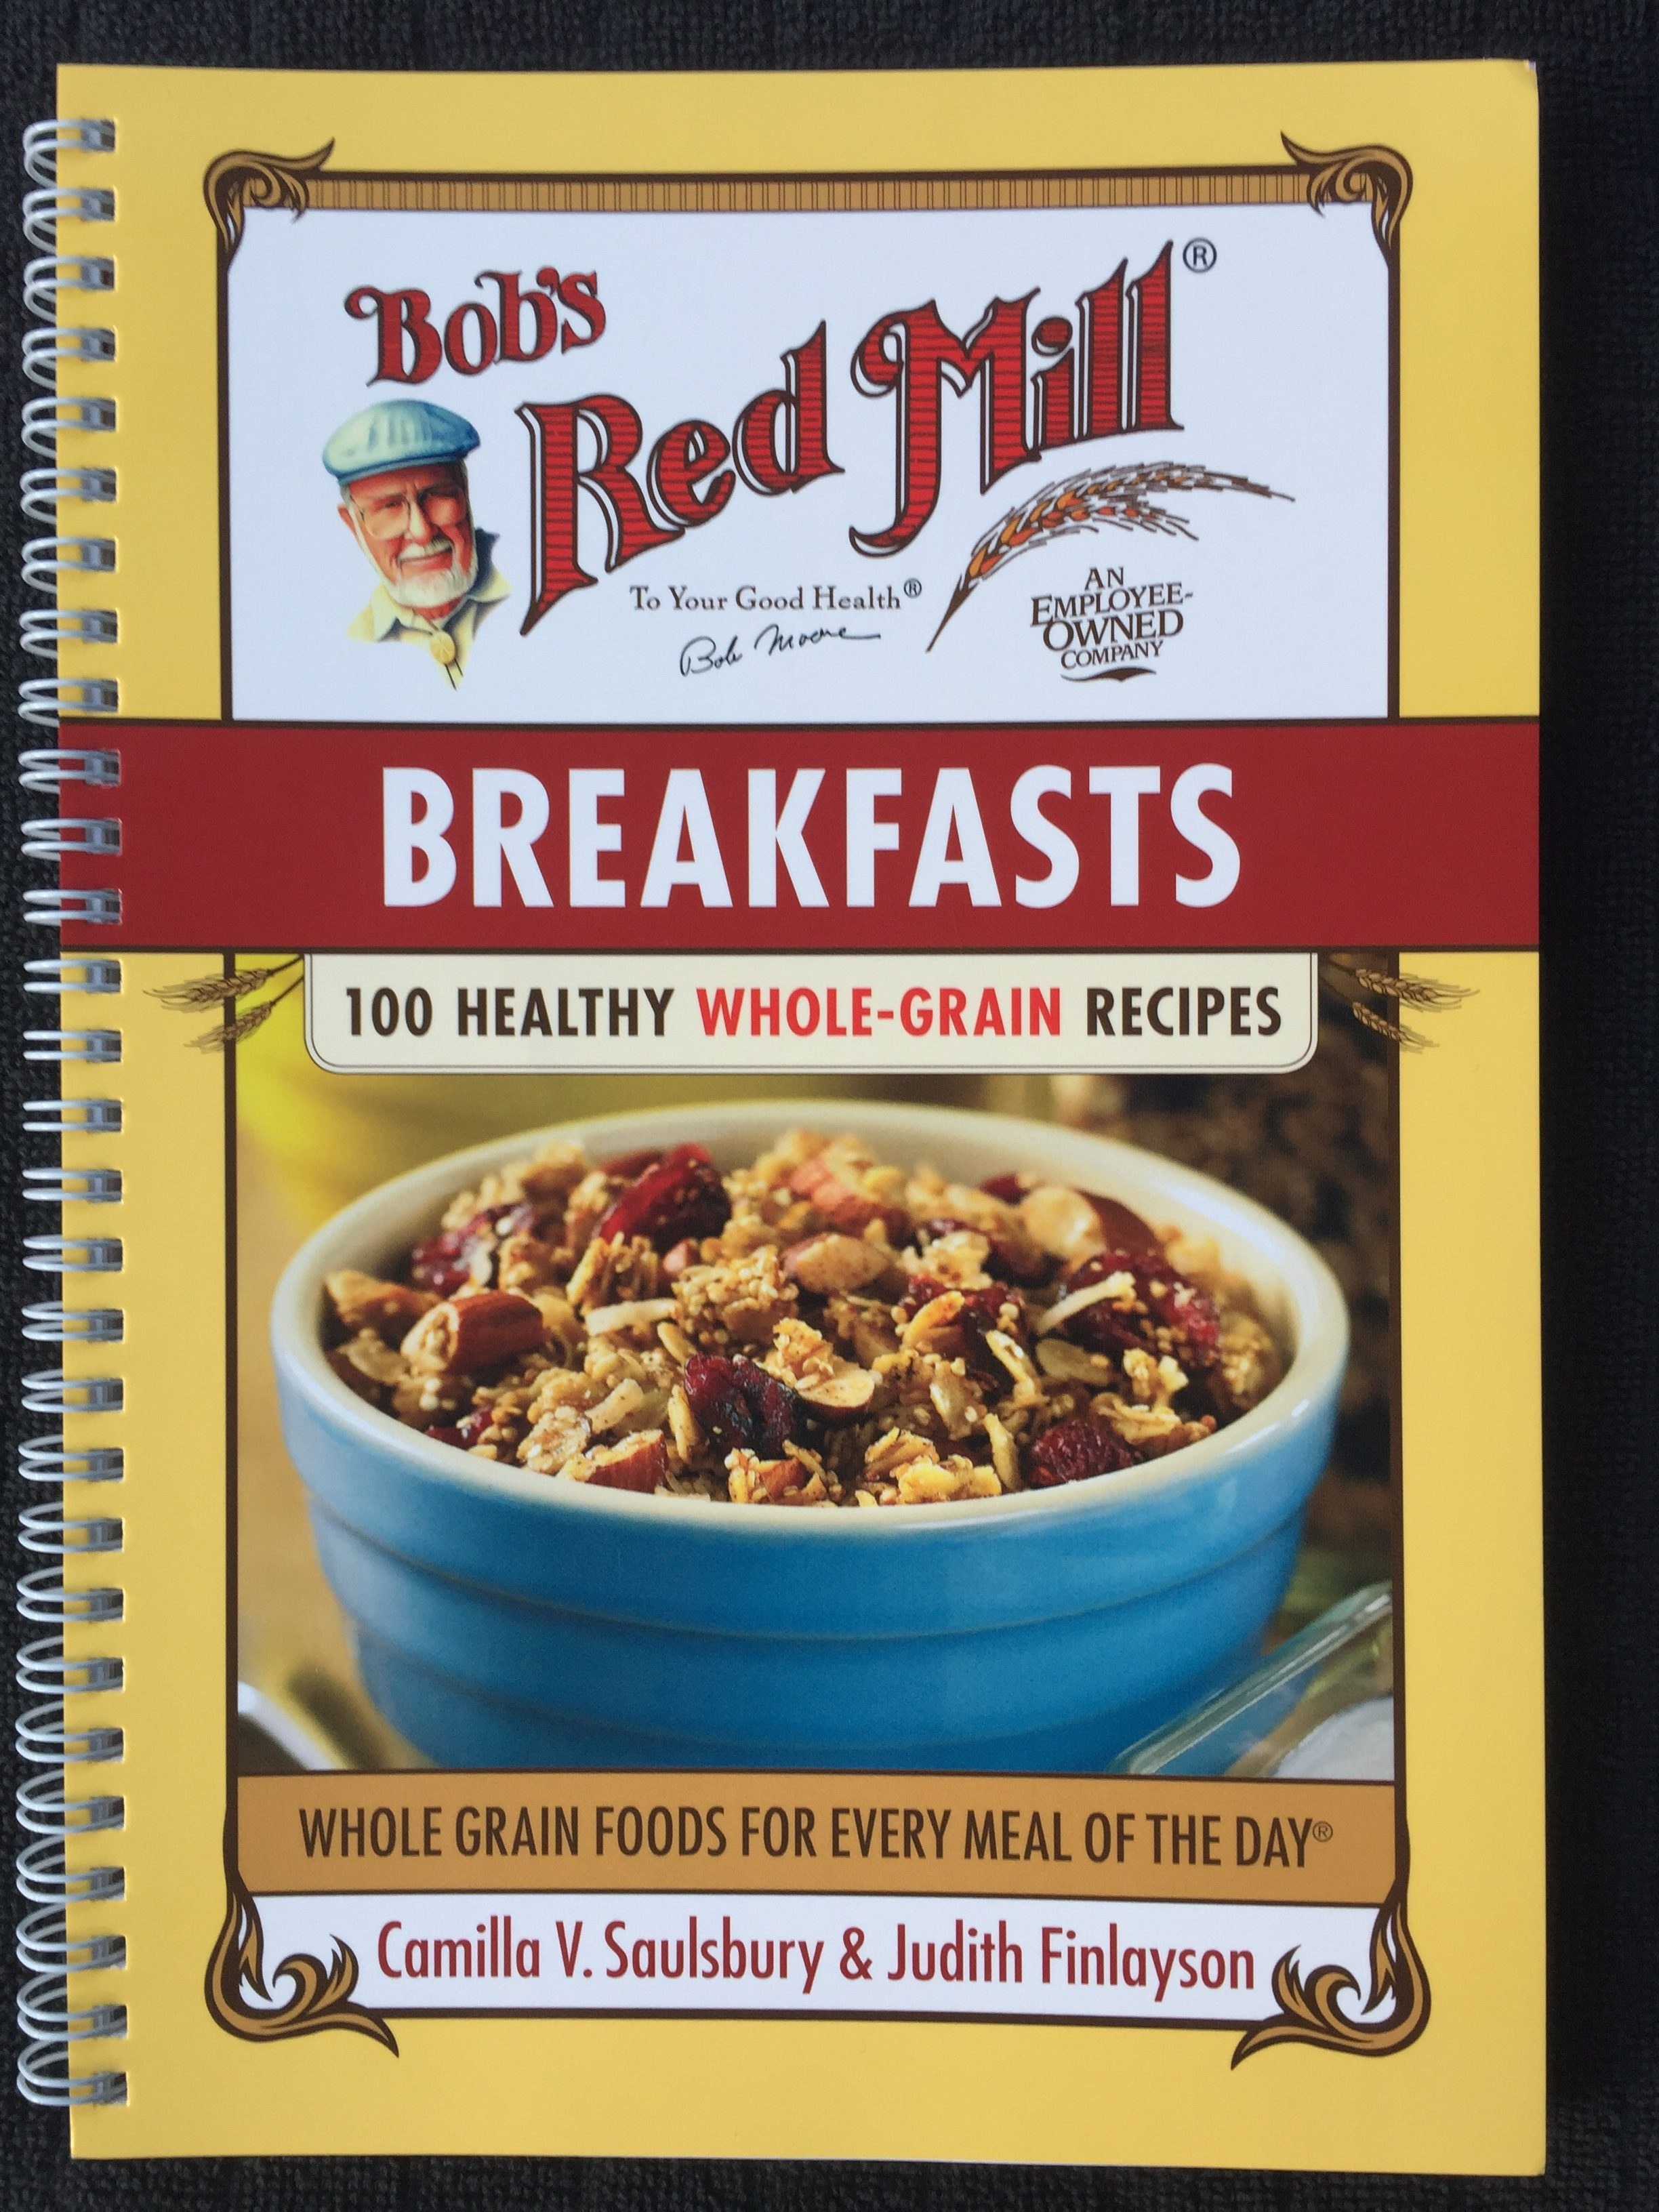 Bob's Red Mill cookbook for meal planning